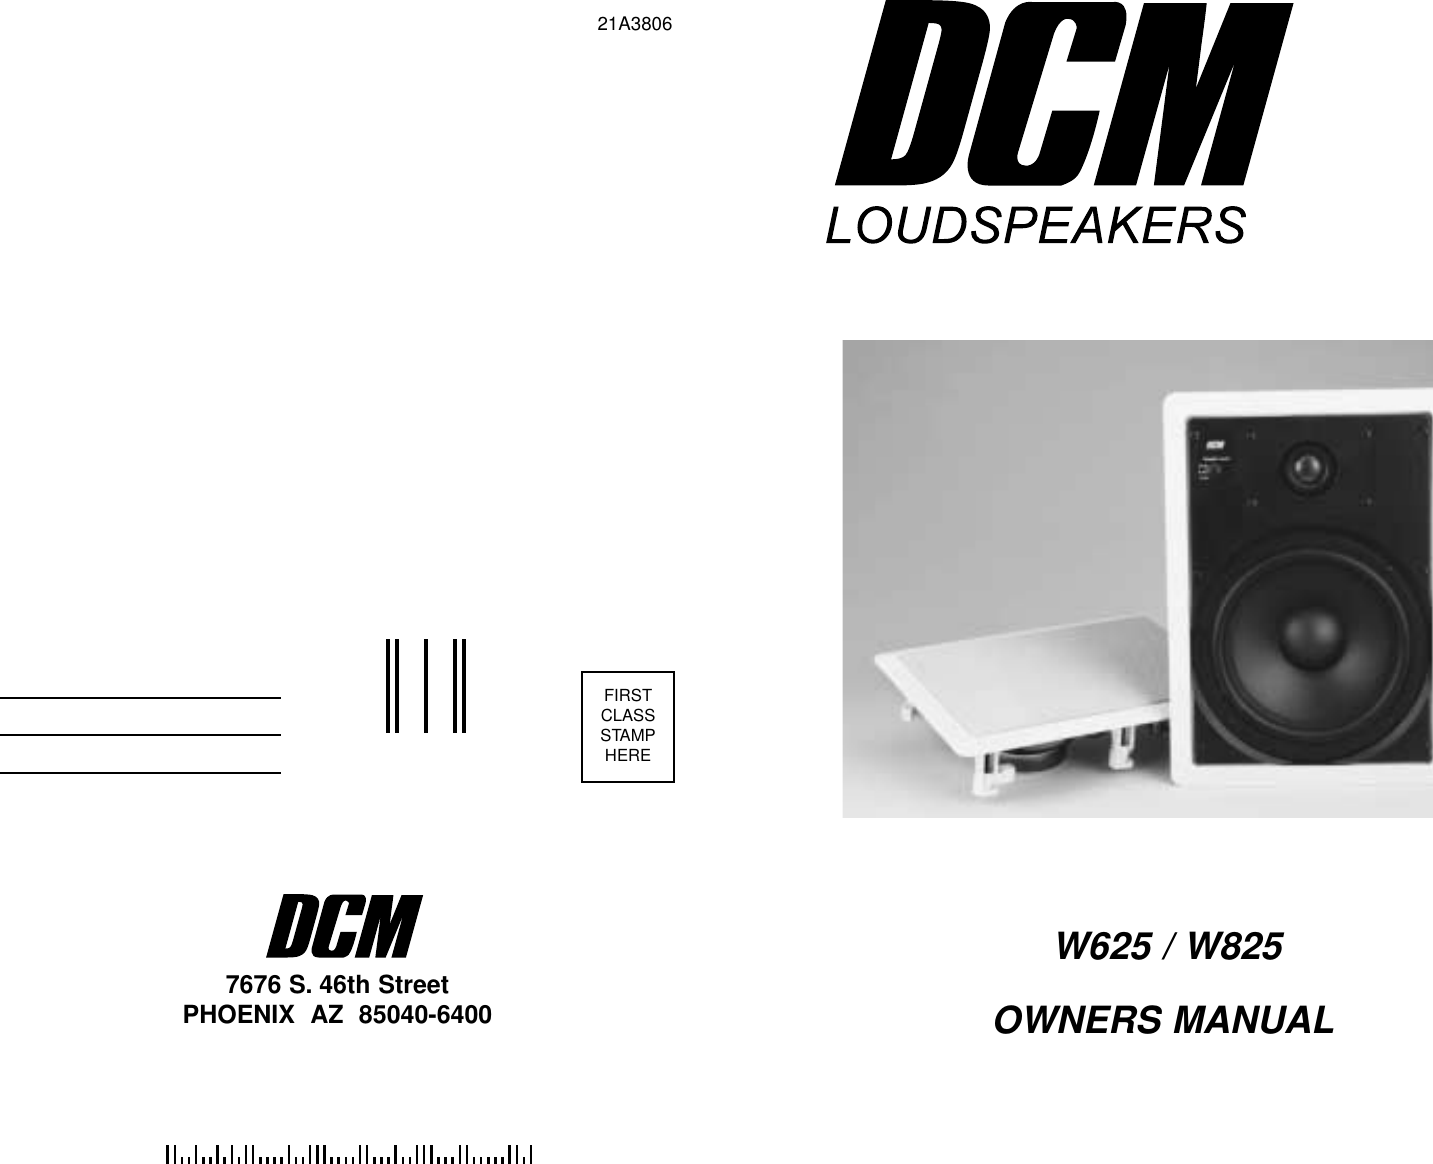 Dcm Speakers W825 Users Manual on